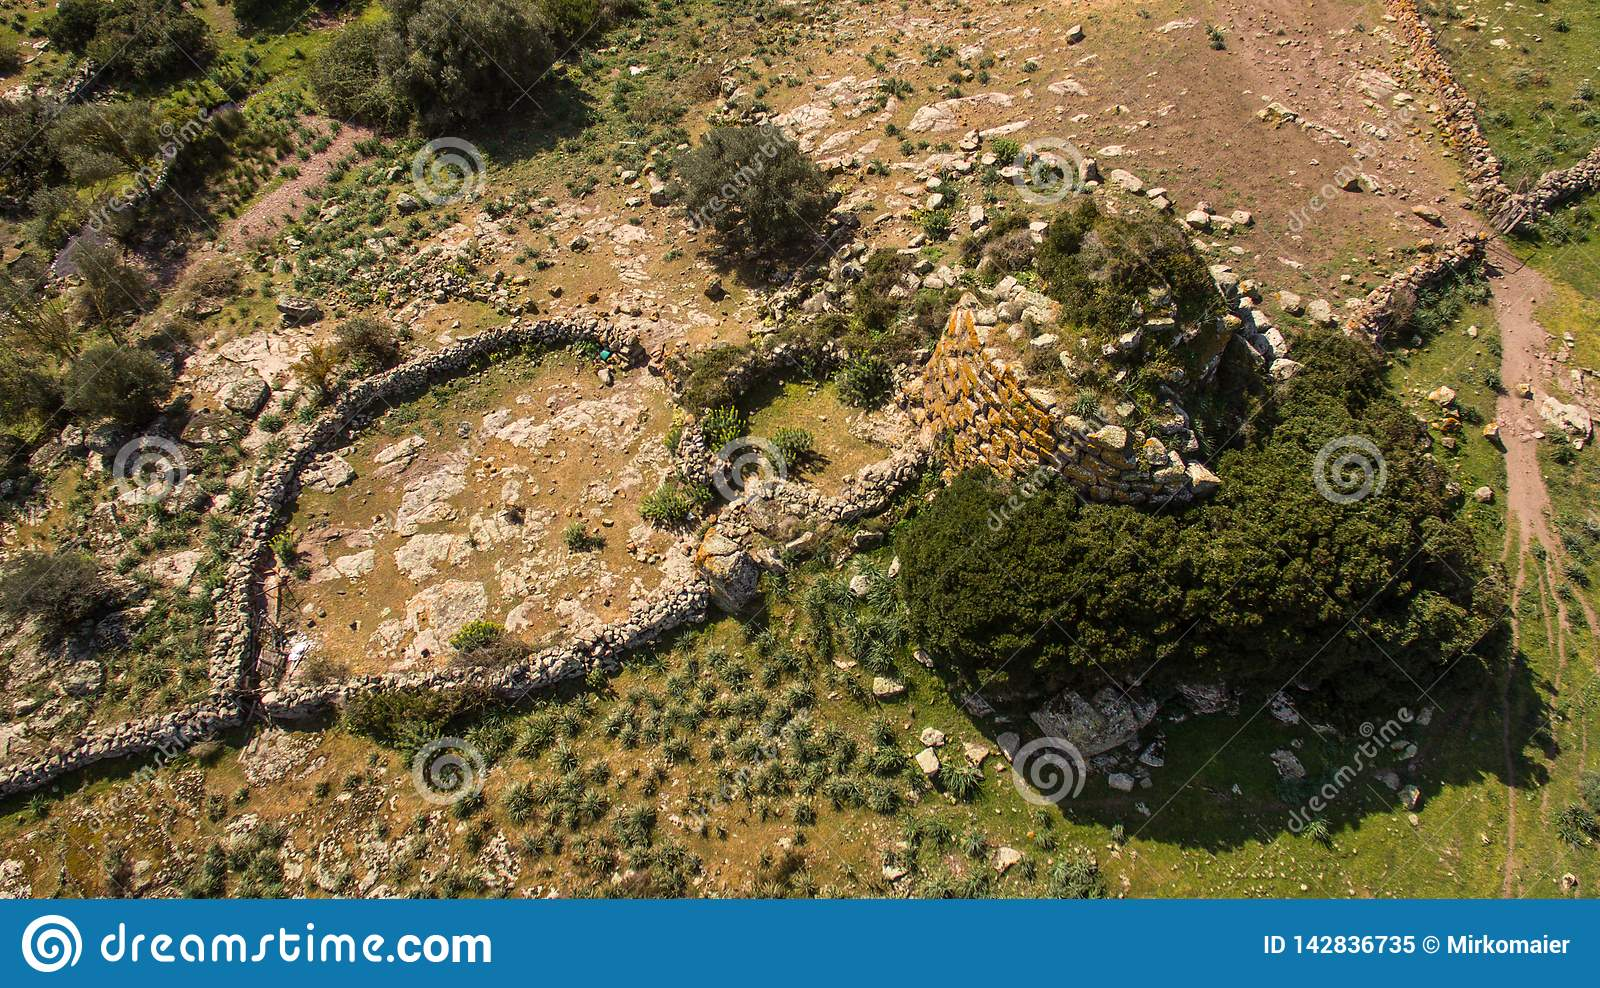 Nuraghe in Sardinia seen with drone